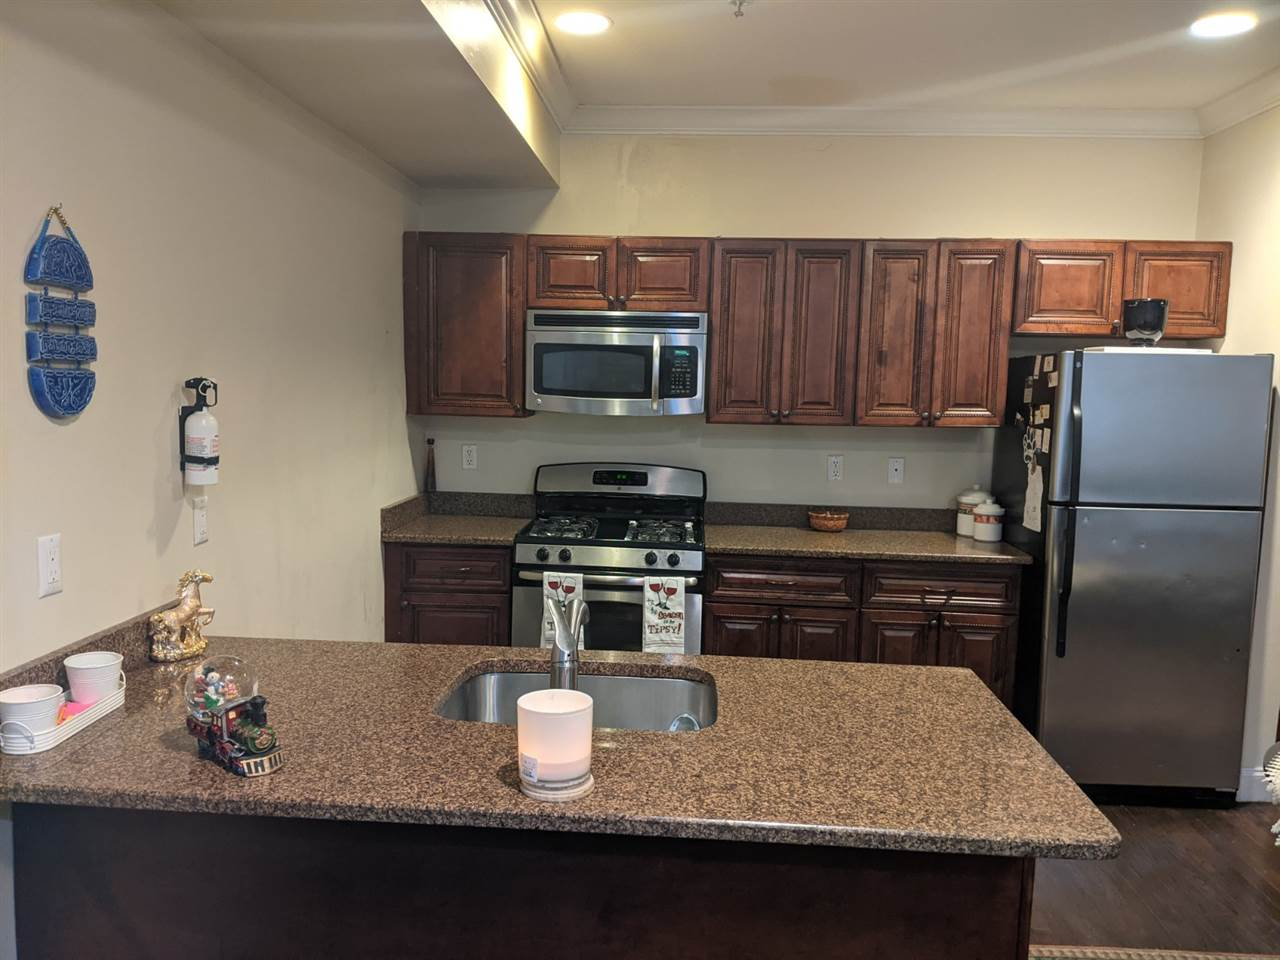 255 BROADWAY, Bayonne, New Jersey 07002, 2 Bedrooms Bedrooms, ,2 BathroomsBathrooms,Condominium,For Sale,255 BROADWAY,210002851